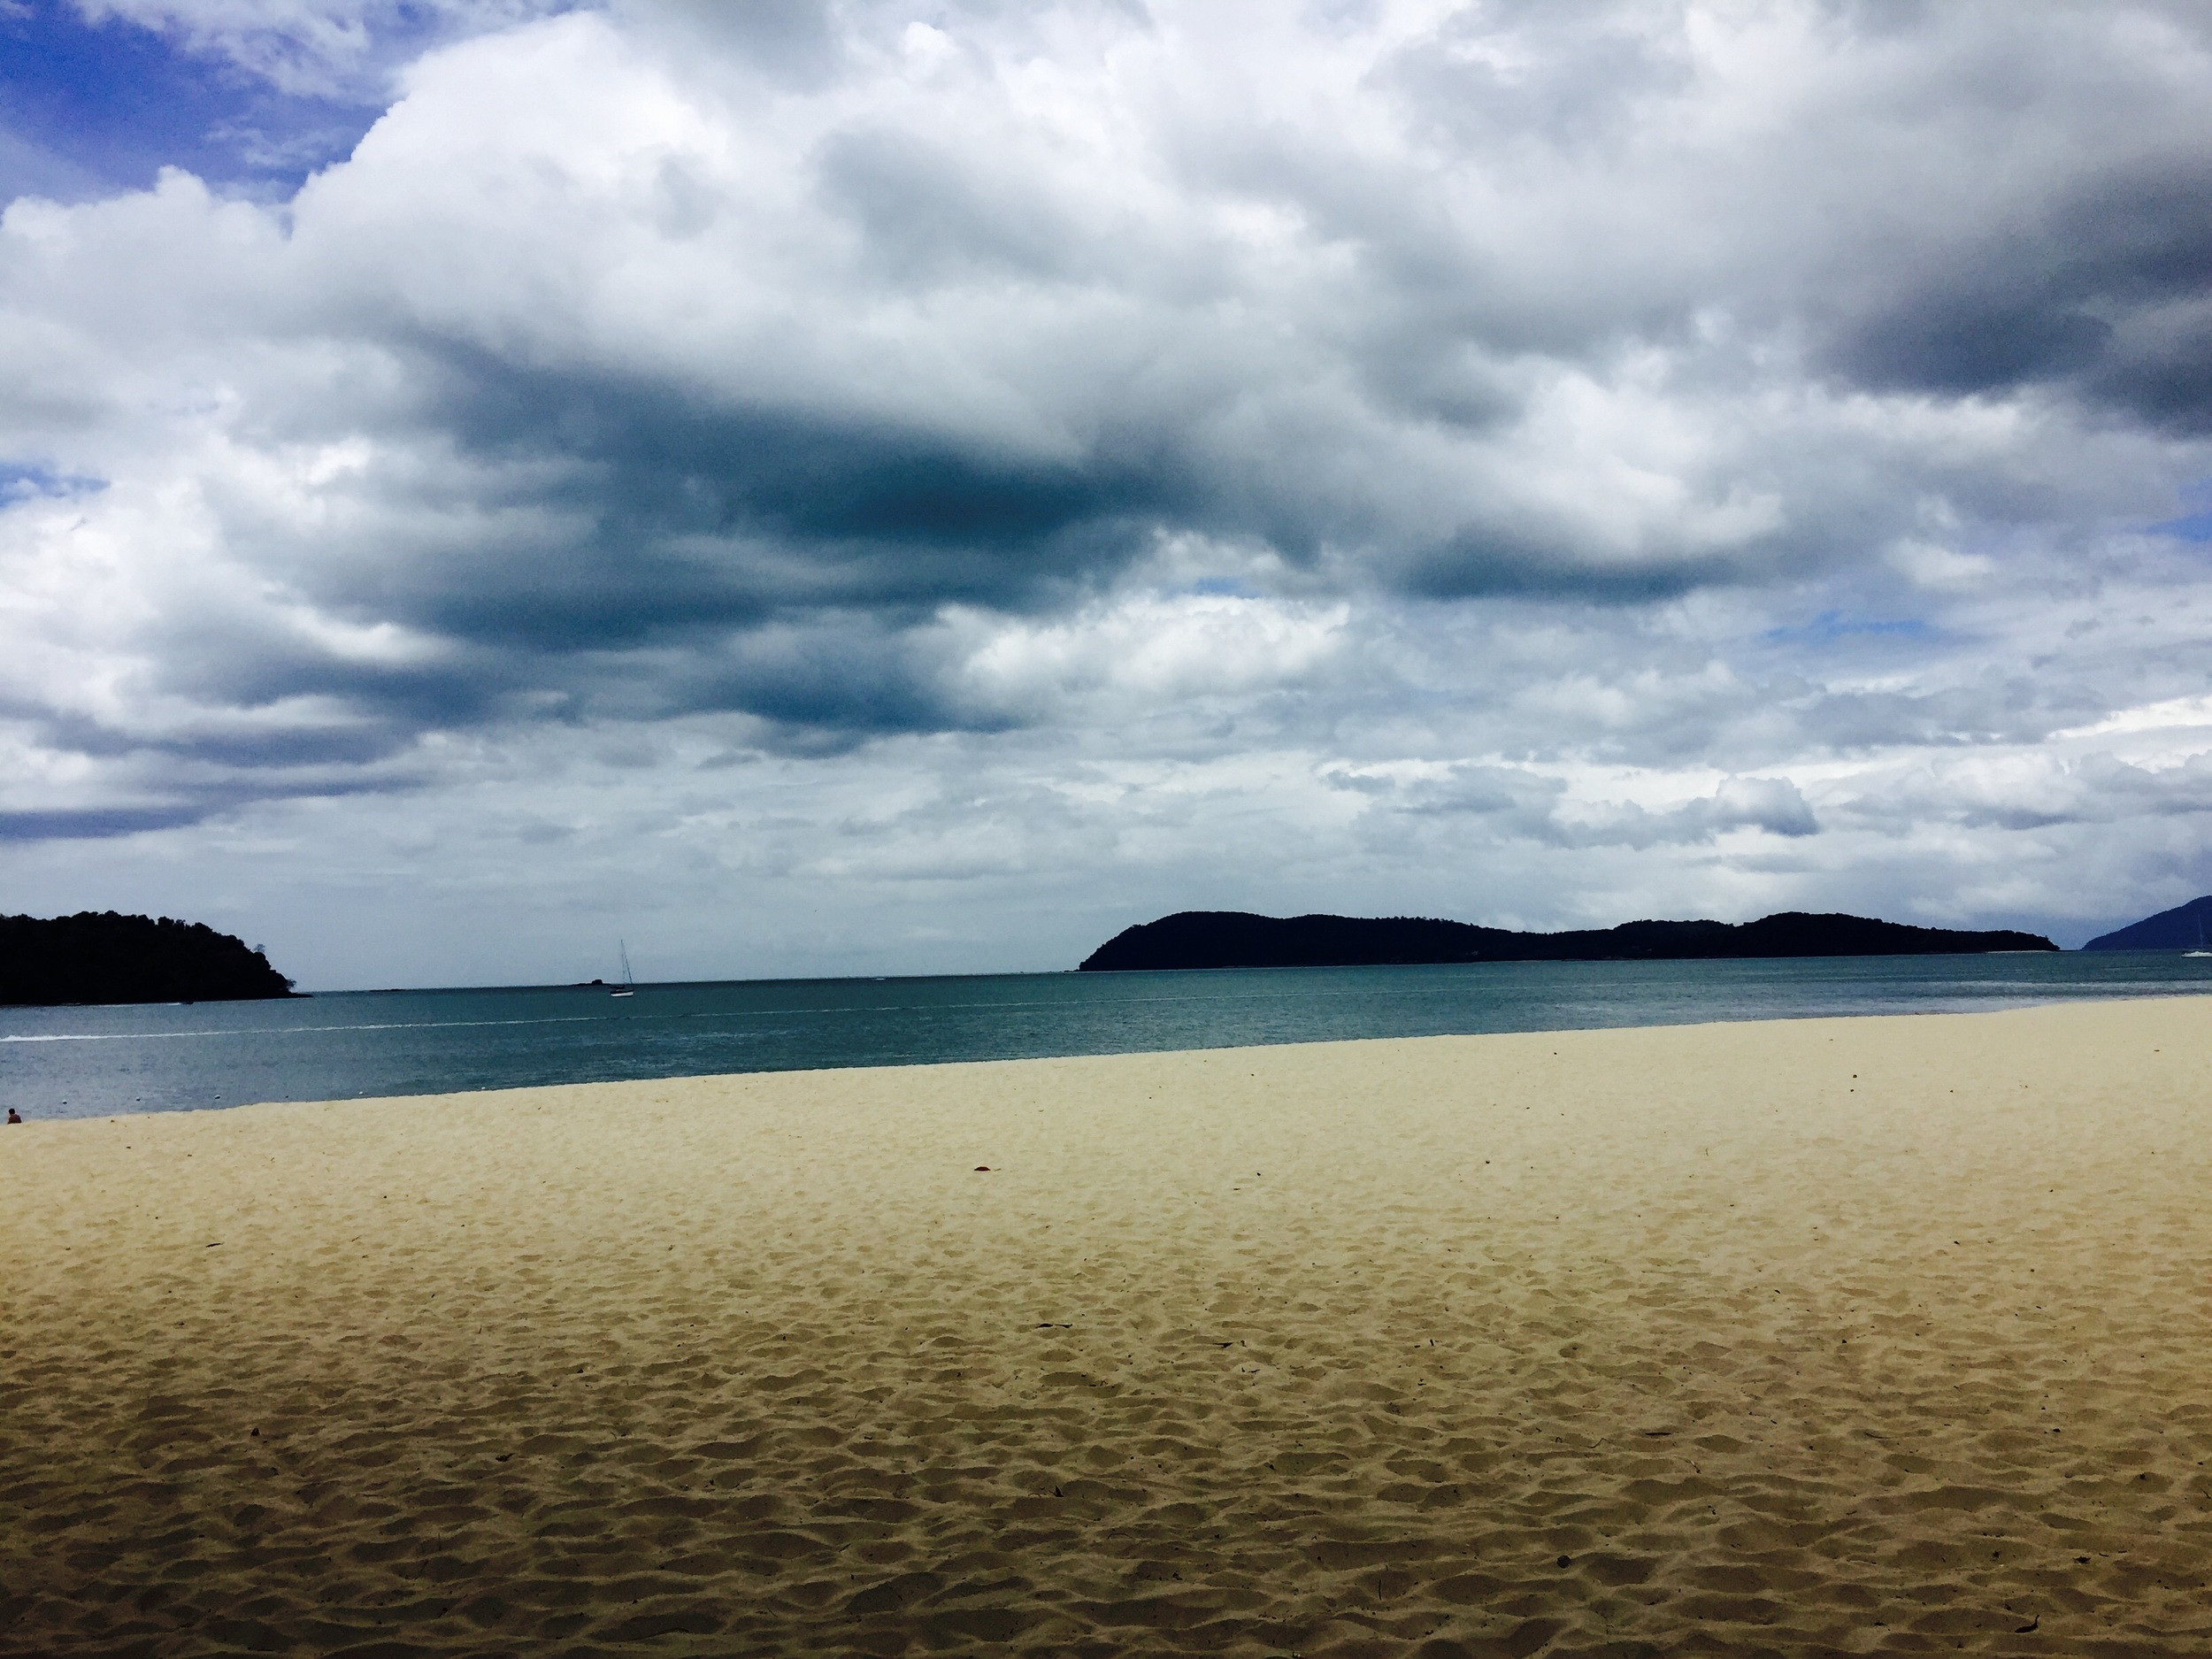 A calm and scenic view on Pantai Tengah